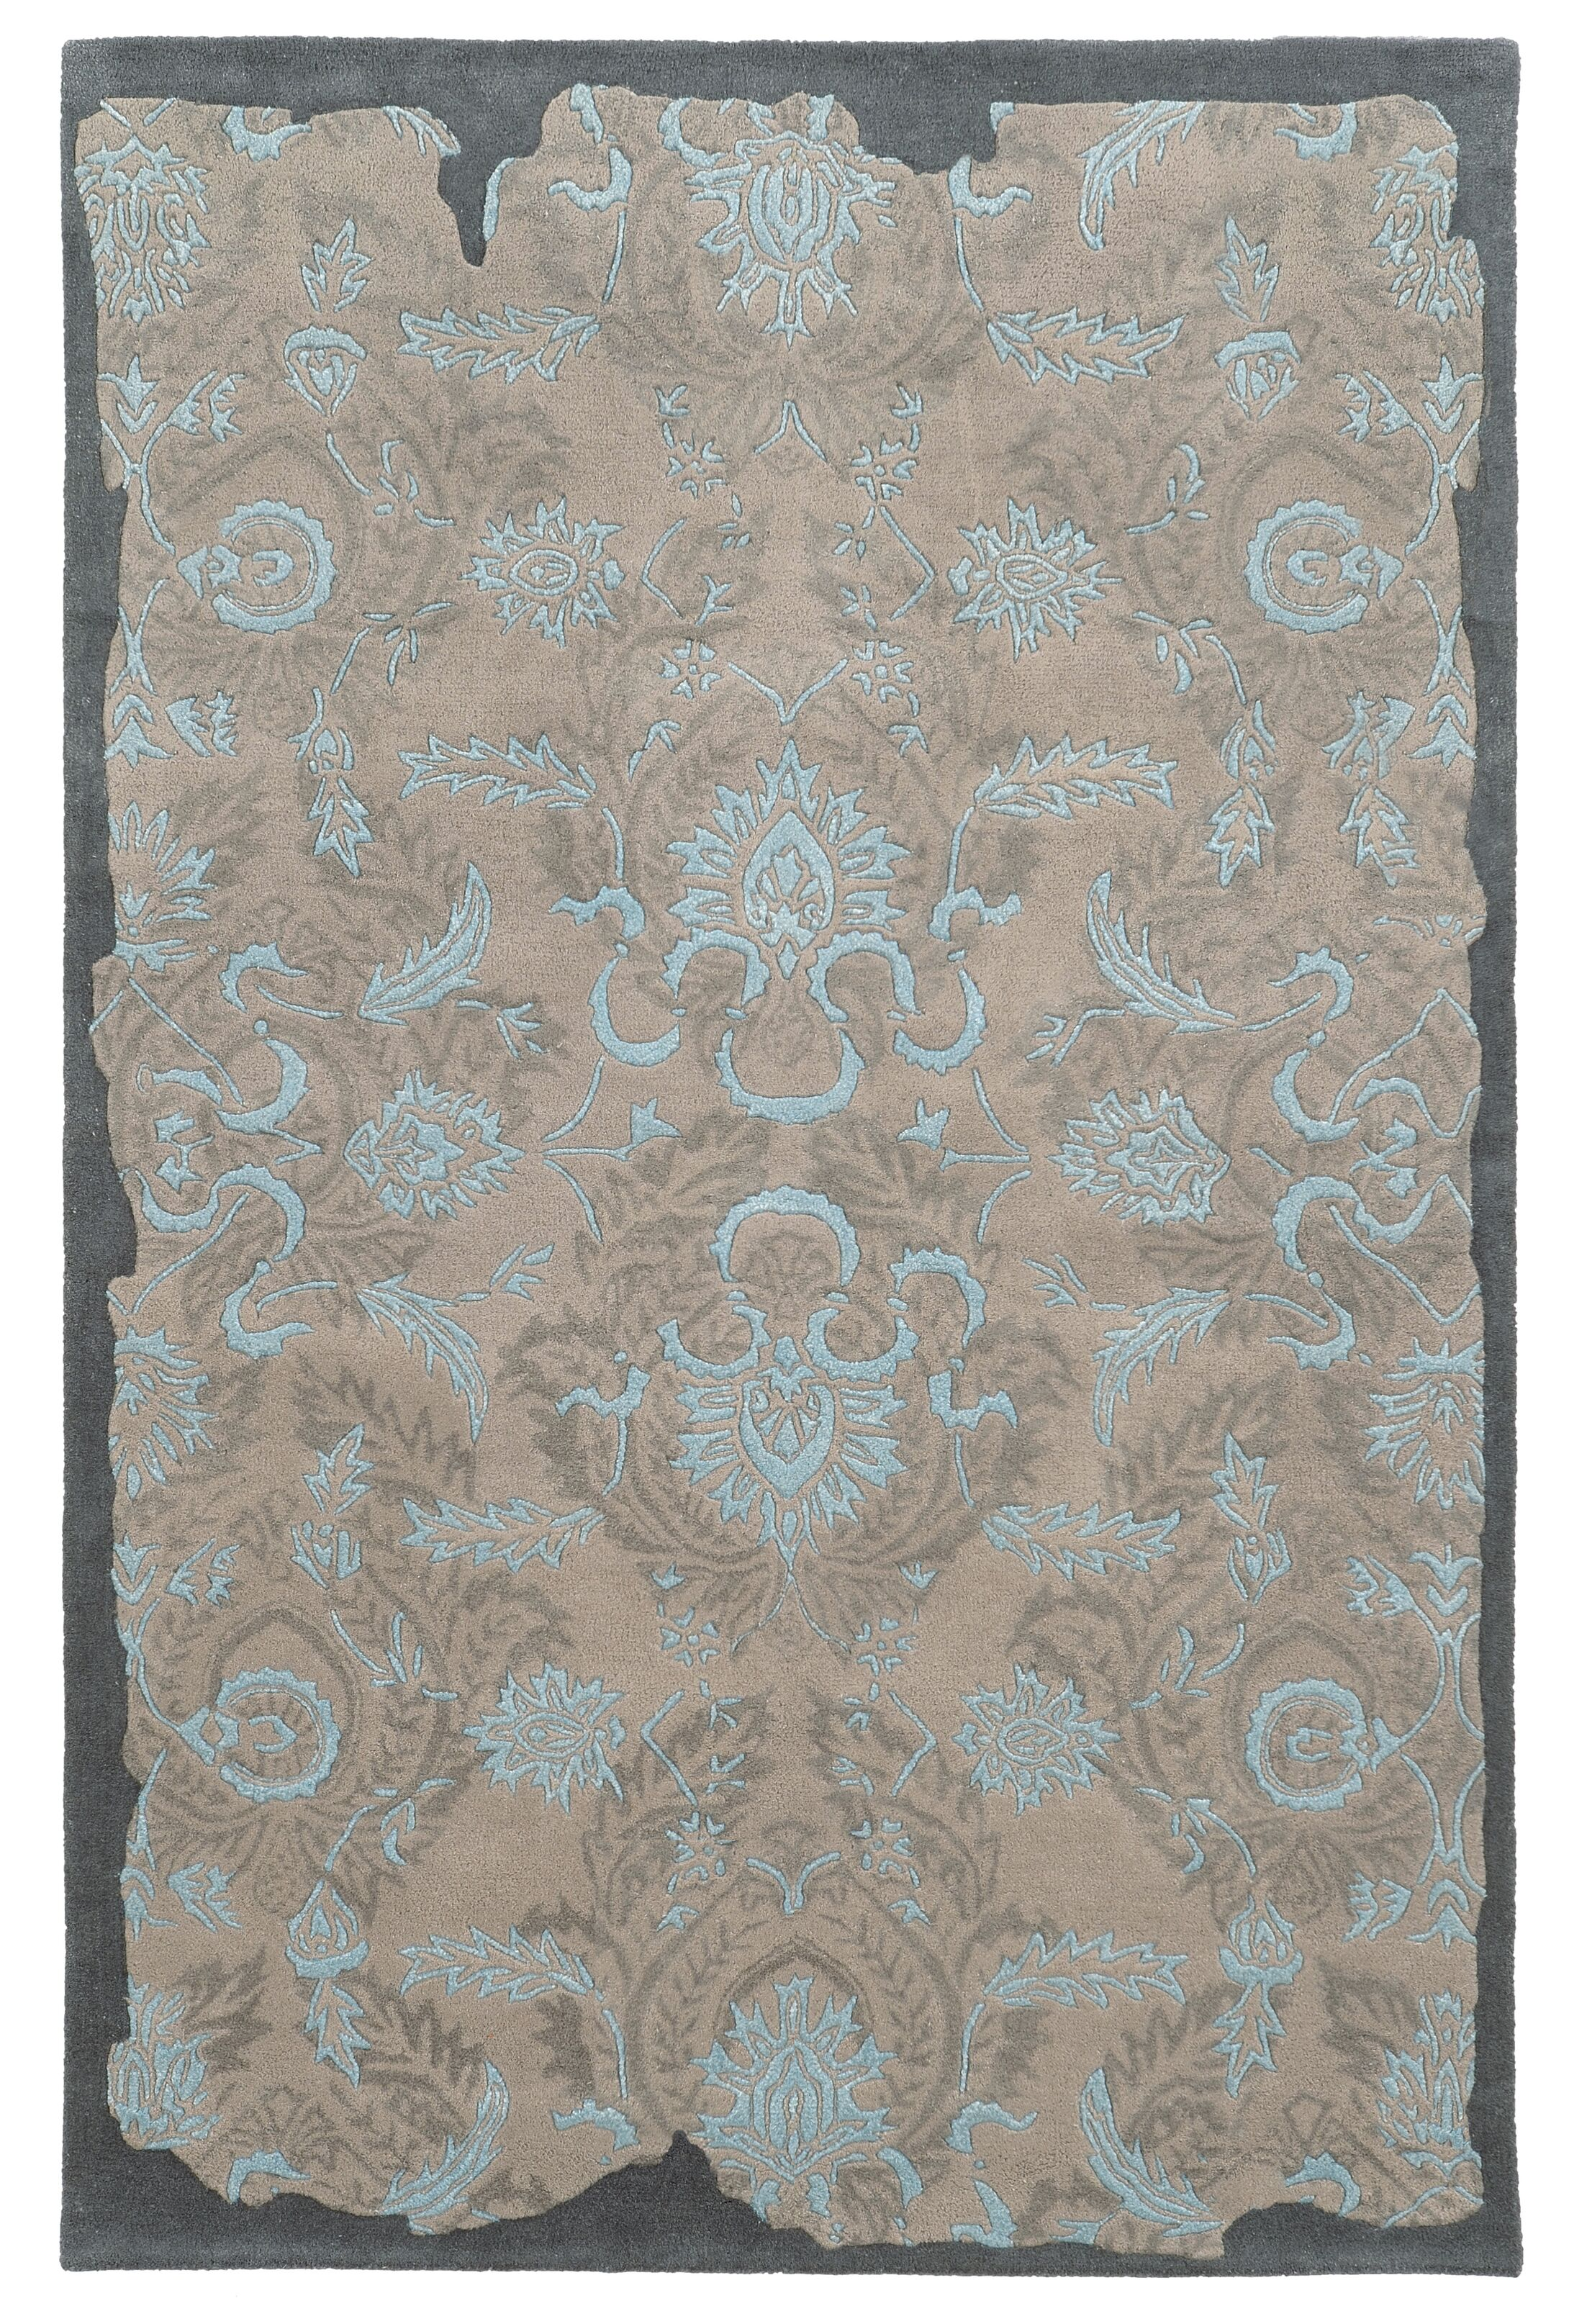 Color Influence Distressed Look Grey / Blue Area Rug Rug Size: Runner 2'6